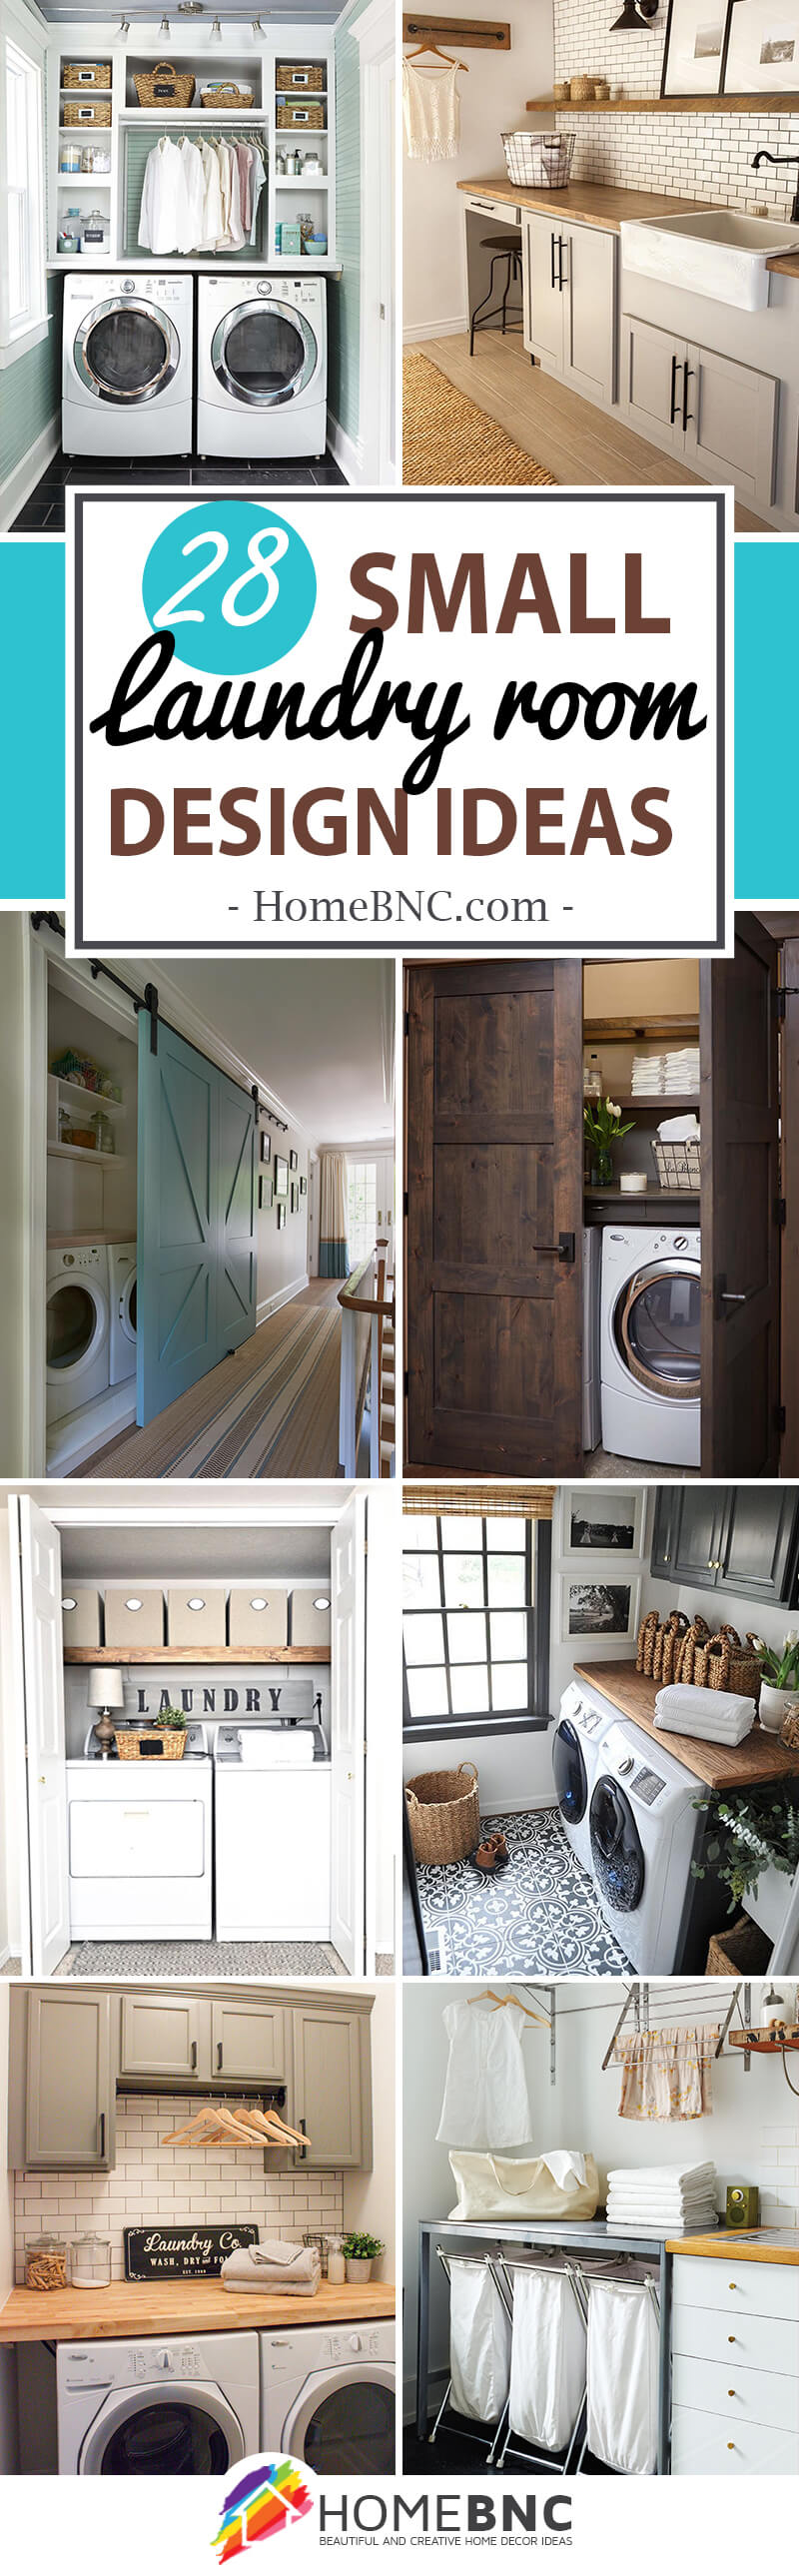 Small Laundry Room Design Decor Ideas